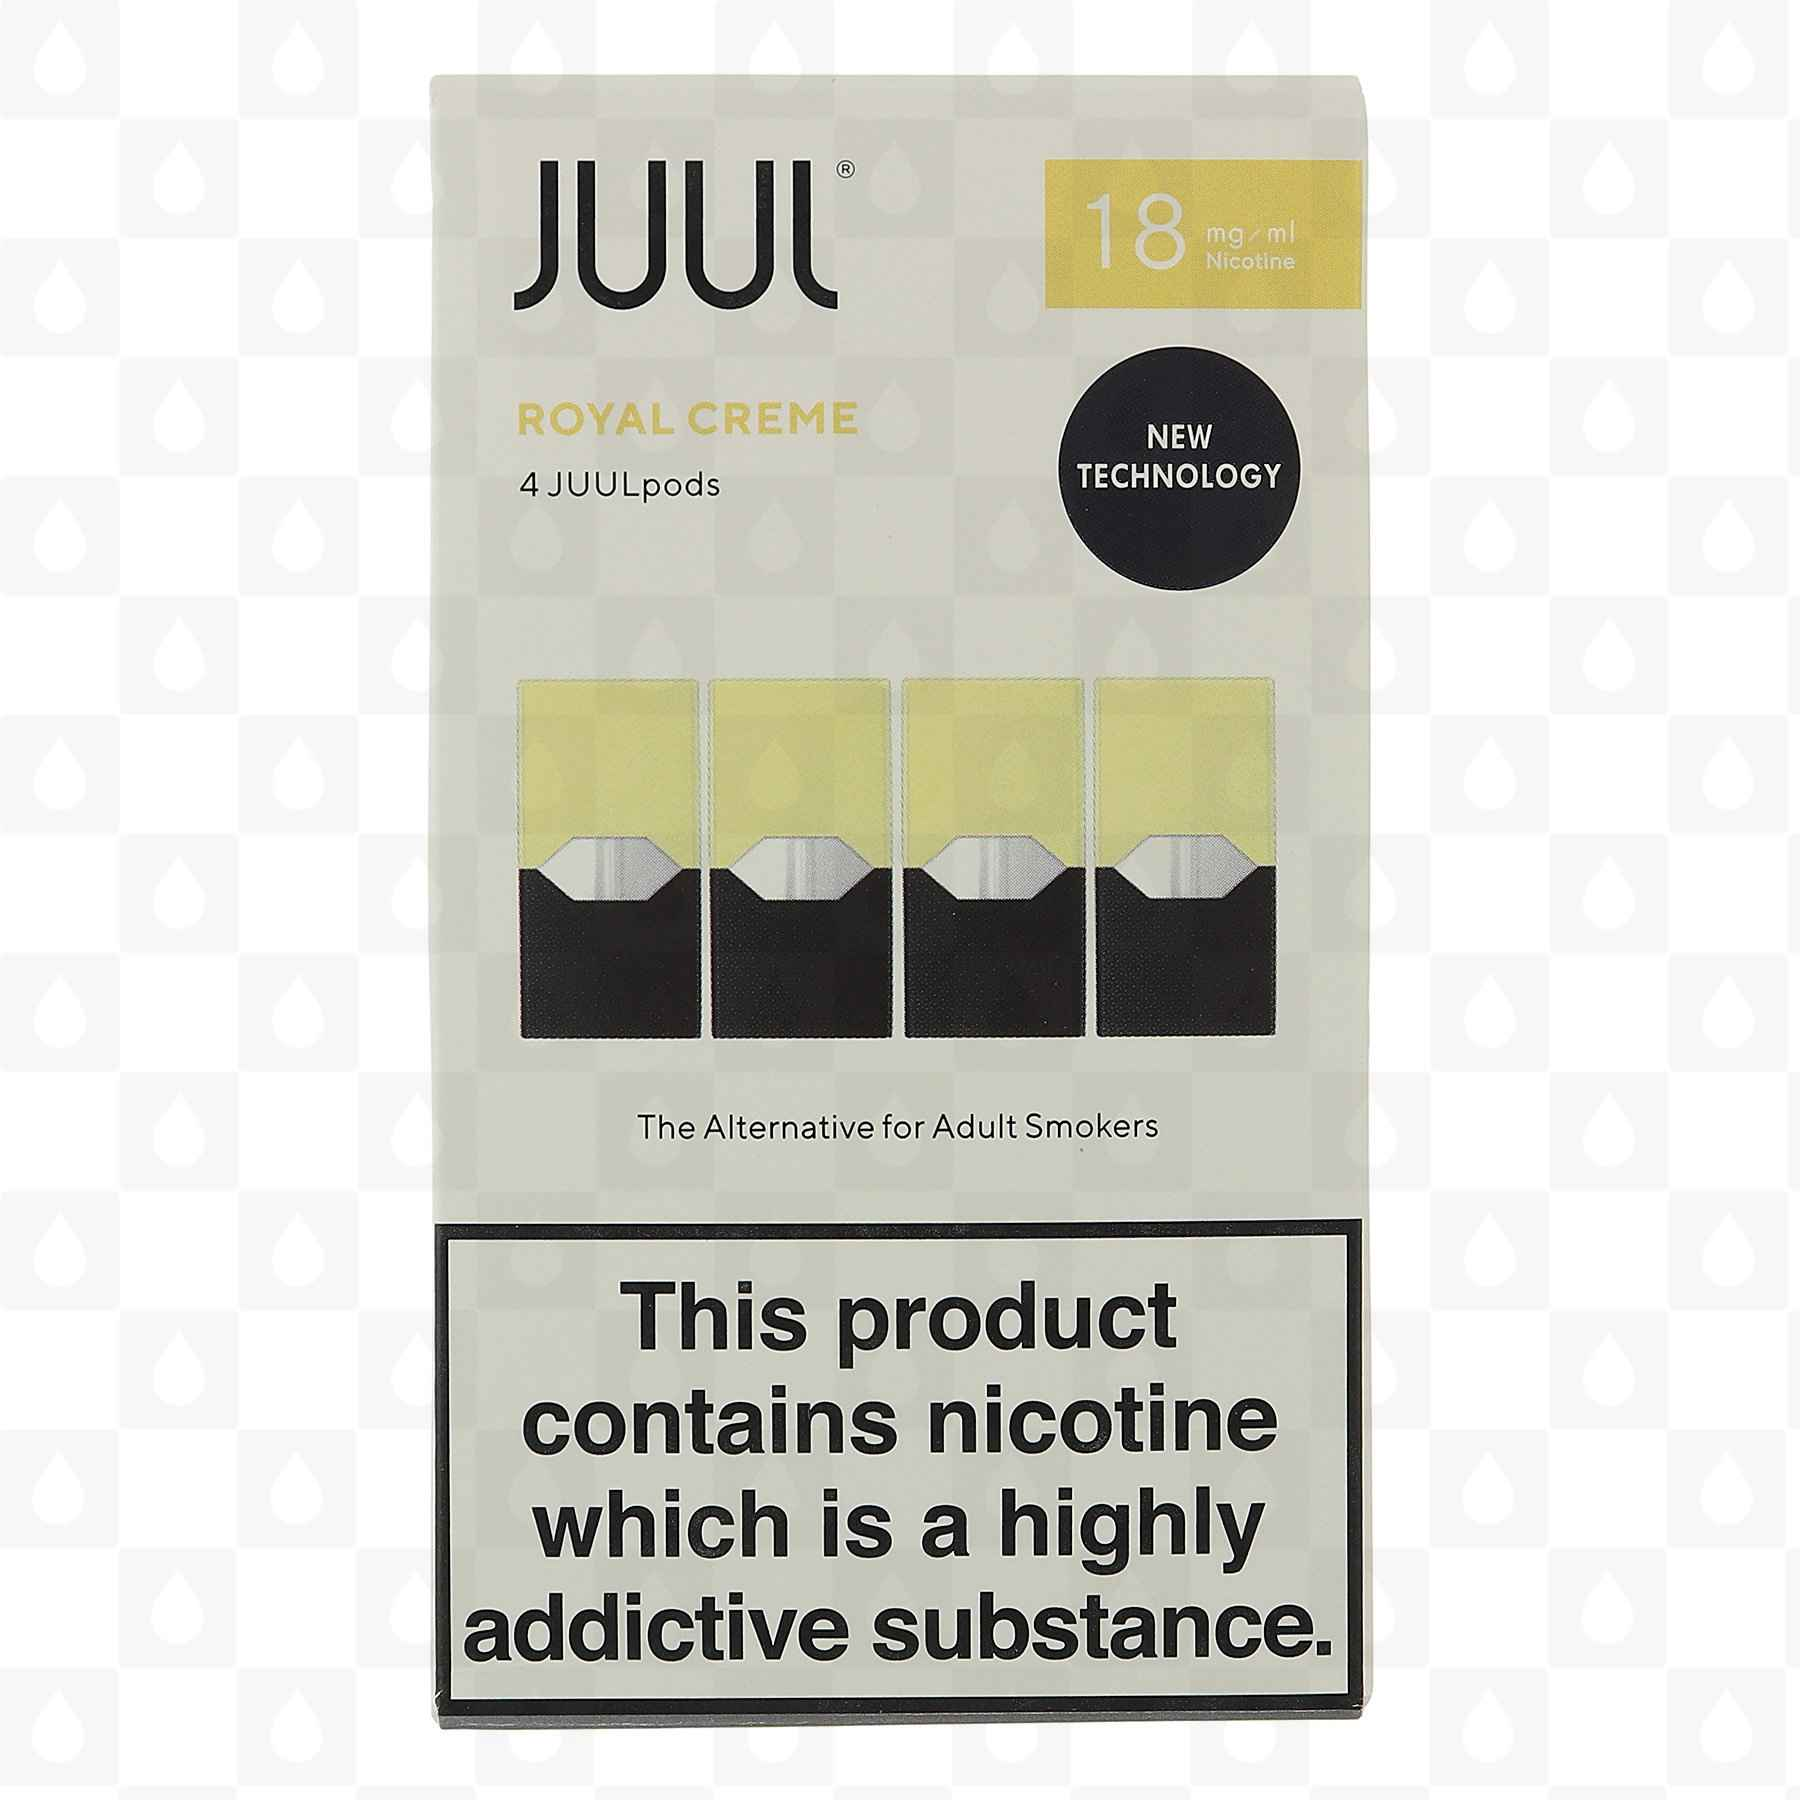 JUUL Royal Creme Replacement Pods